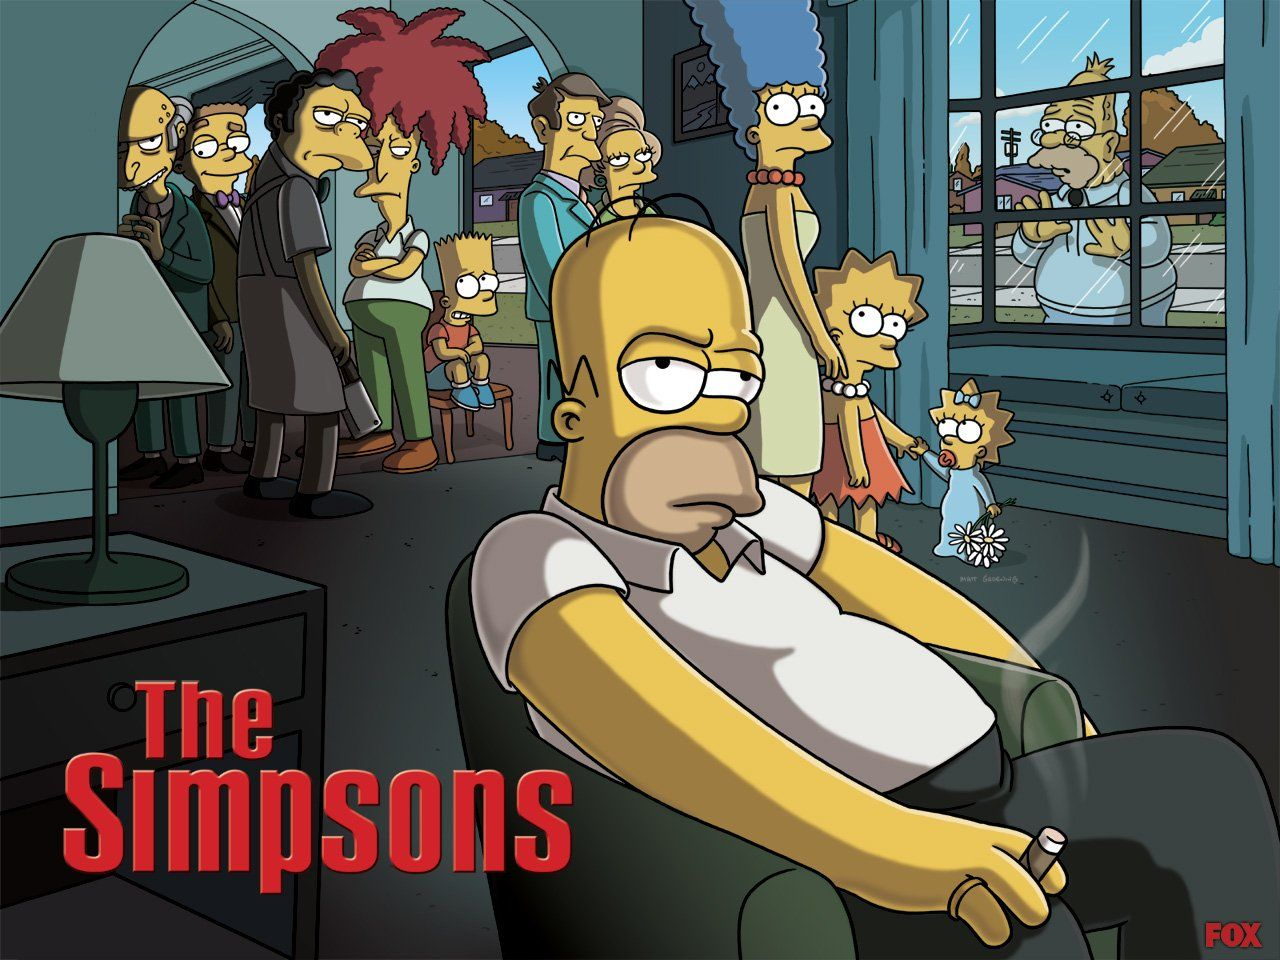 1280x960 386 The Simpsons HD Wallpapers | Background Images - Wallpaper Abyss